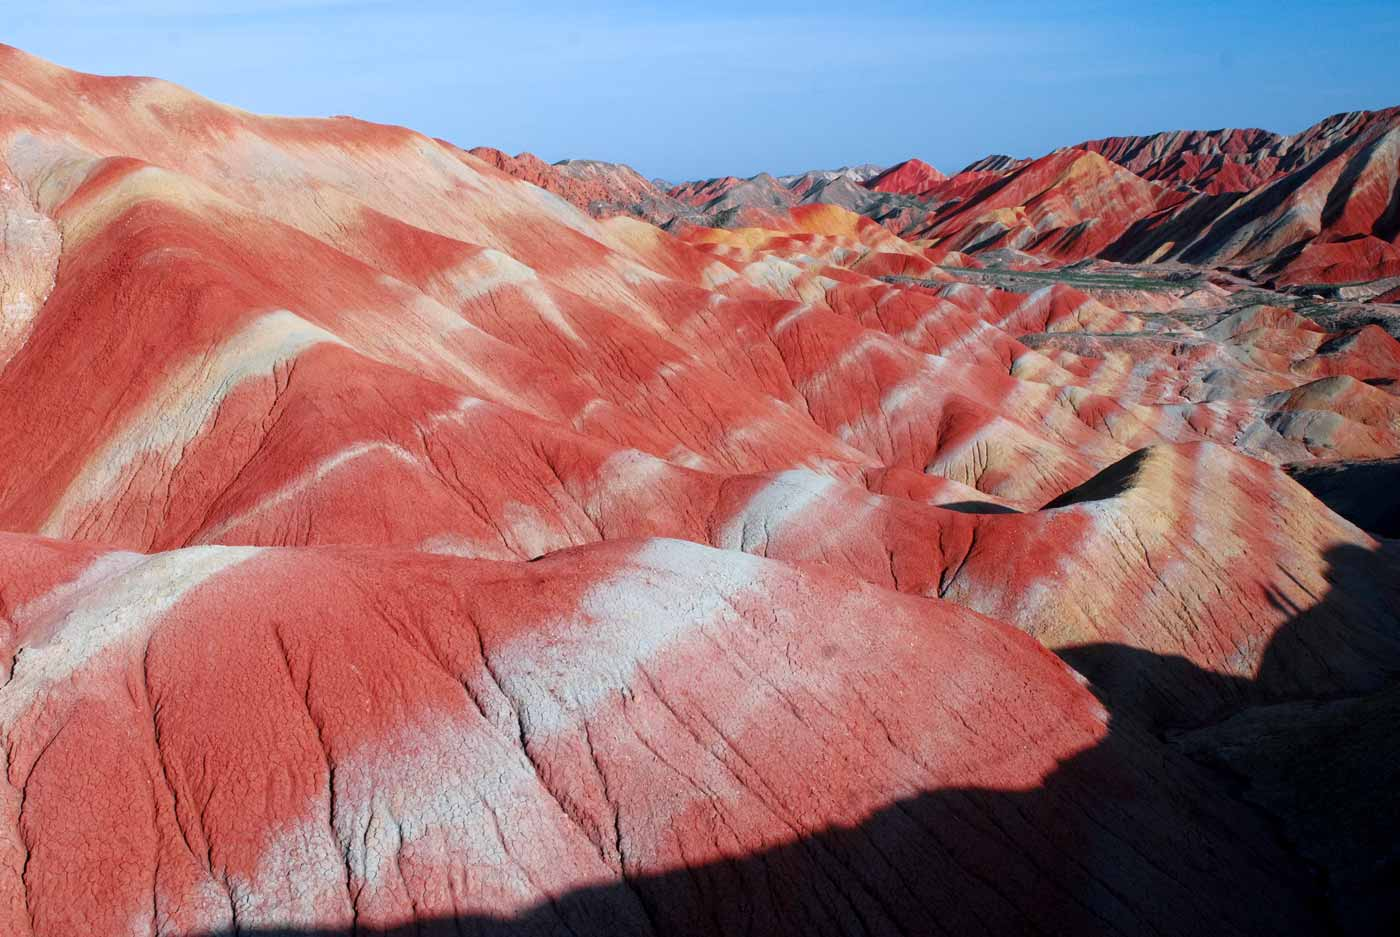 Accommodations South Africa The Rainbow Mountains Of Zhangye Danxia Are An Artist's Dream